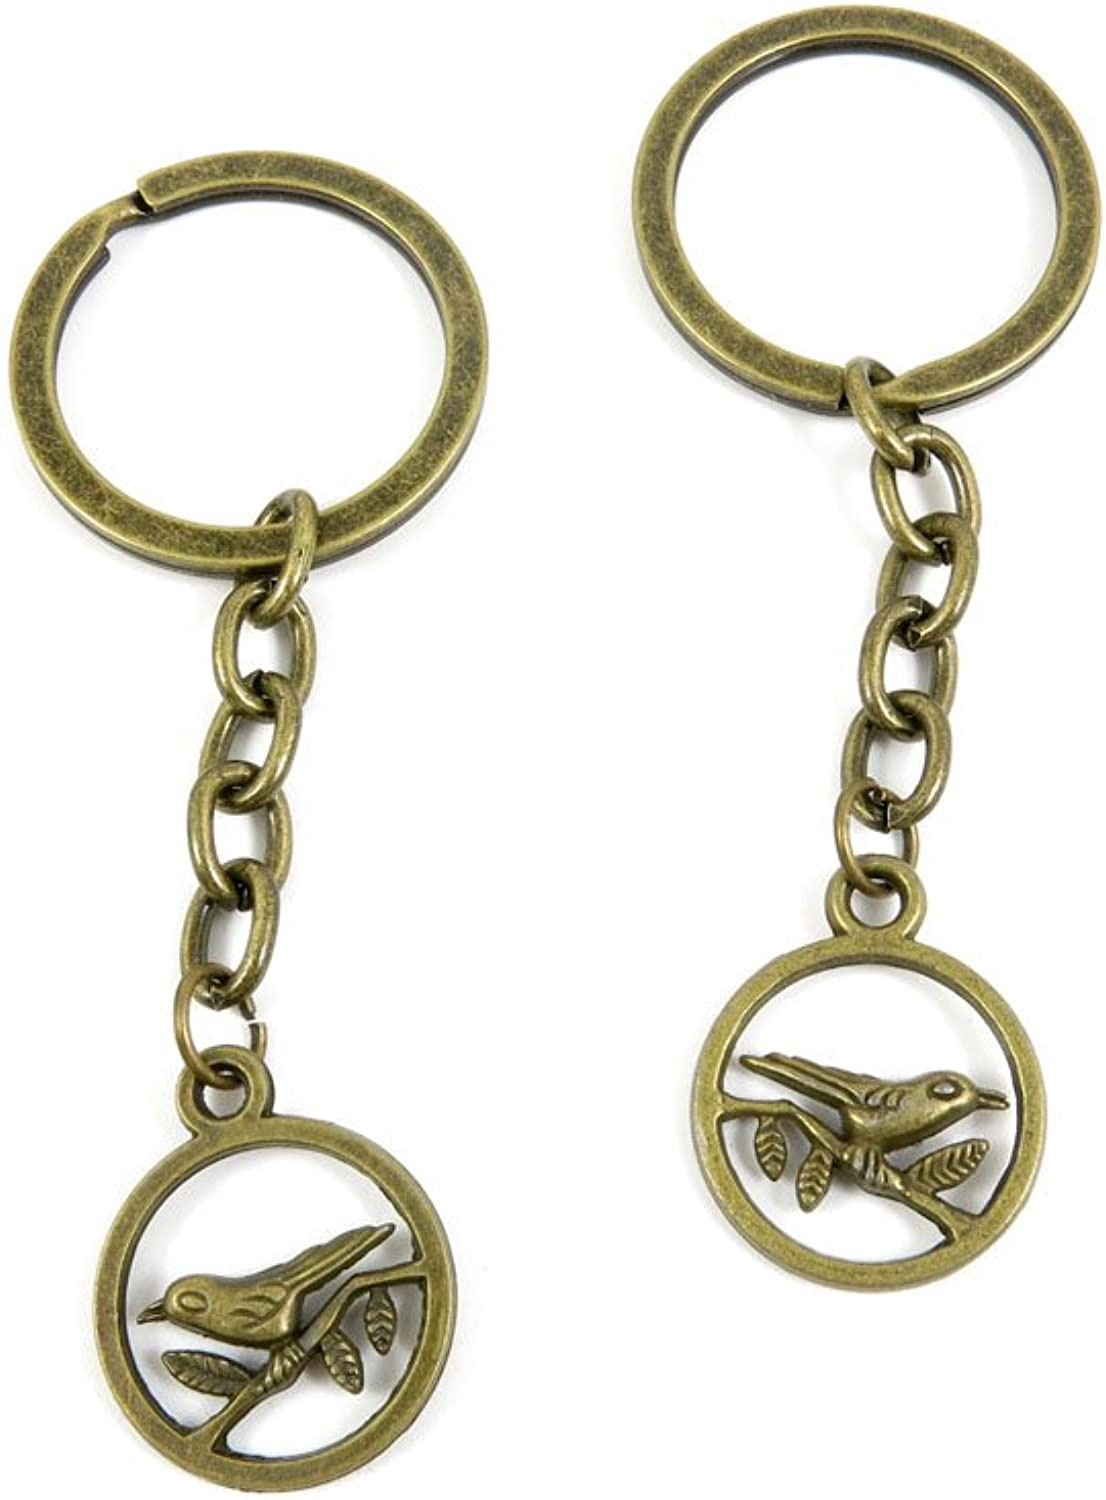 190 Pieces Fashion Jewelry Keyring Keychain Door Car Key Tag Ring Chain Supplier Supply Wholesale Bulk Lots A9CK3 Bird